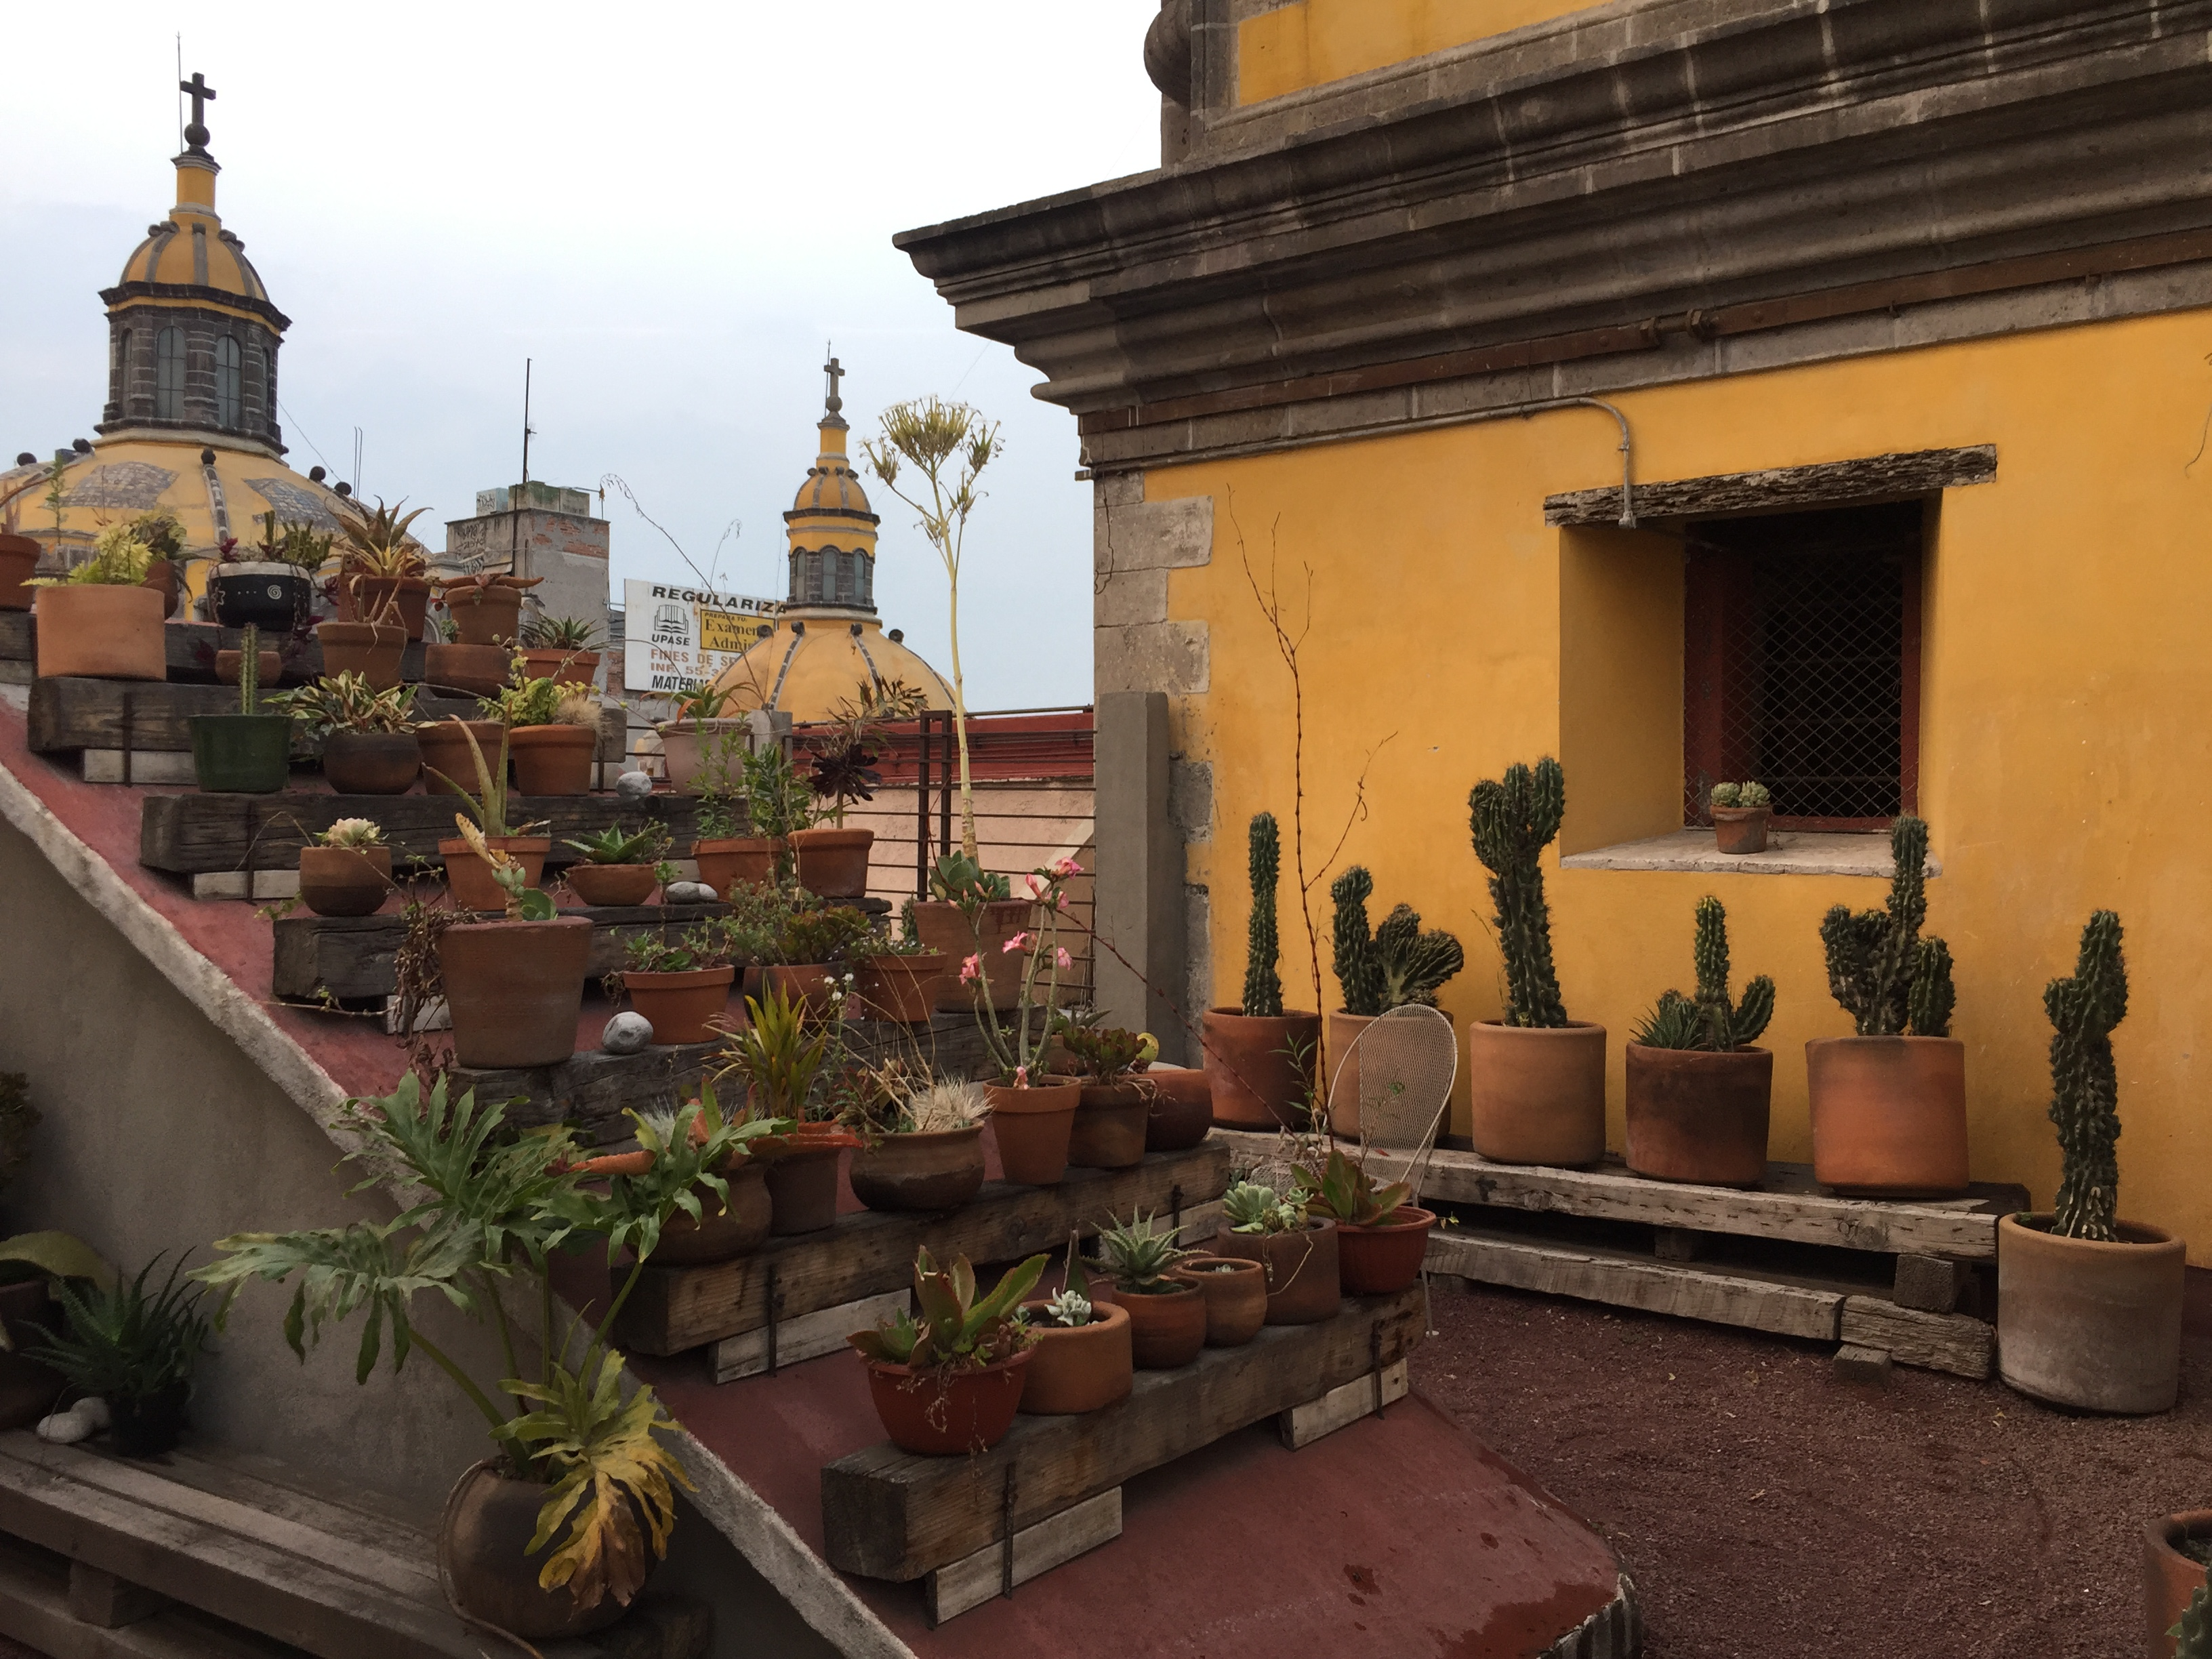 Chaya Bed and Breakfast Reviewed Mexico CIty Hotel with Rooftop Views